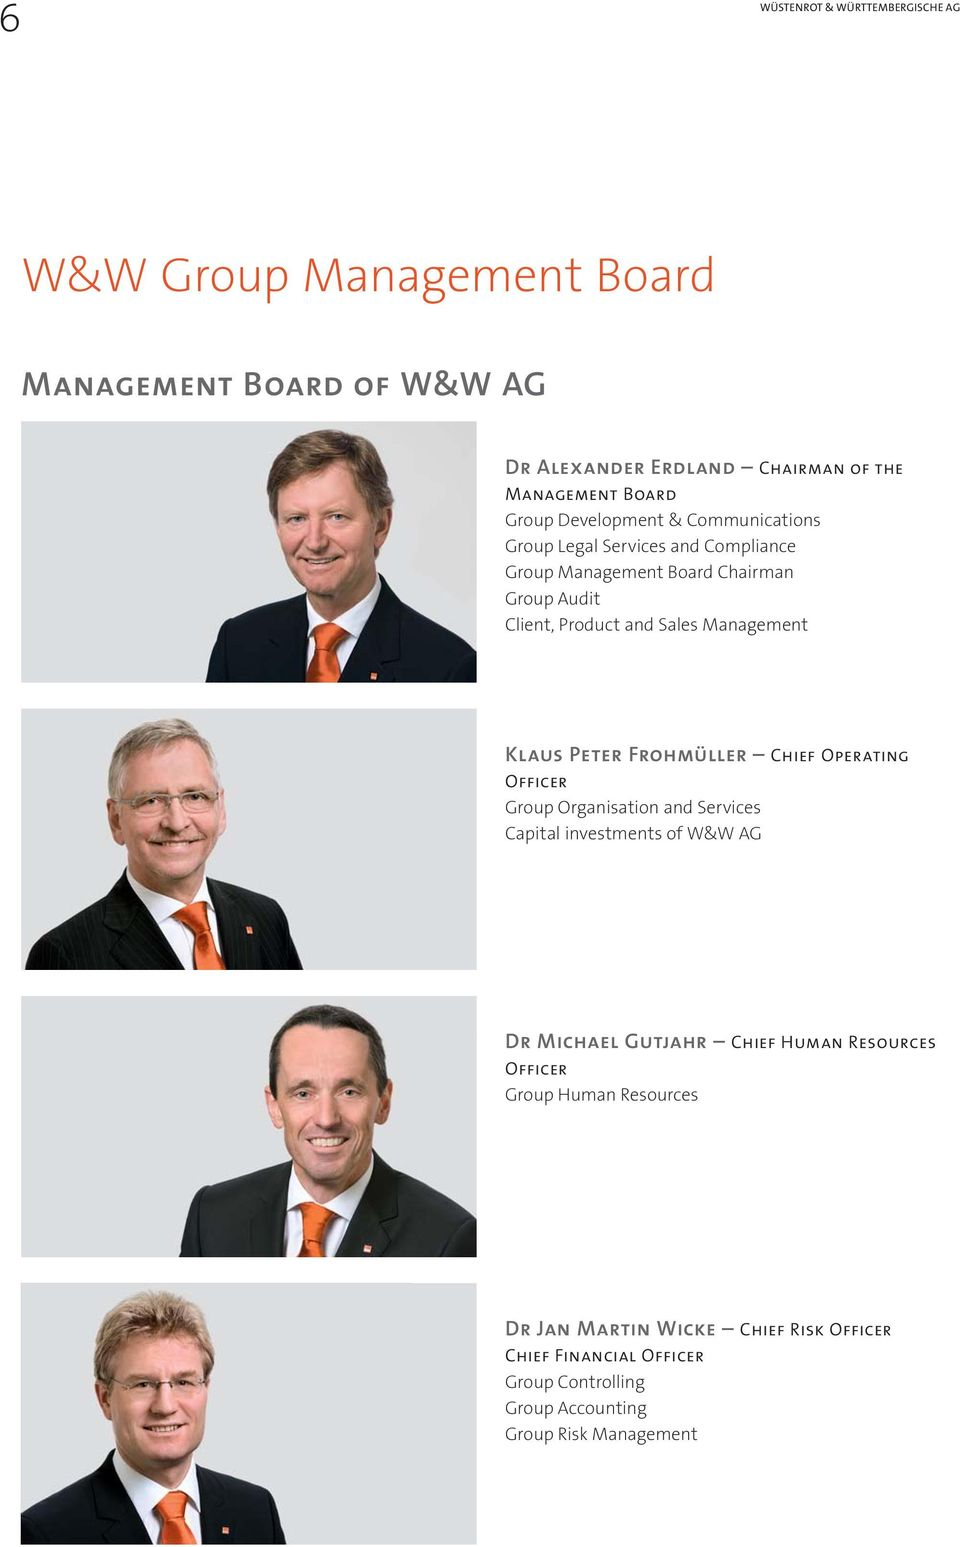 KLAUS PETER FROHMÜLLER CHIEF OPERATING OFFICER Group Organisation and Services Capital investments of W&W AG DR MICHAEL GUTJAHR CHIEF HUMAN